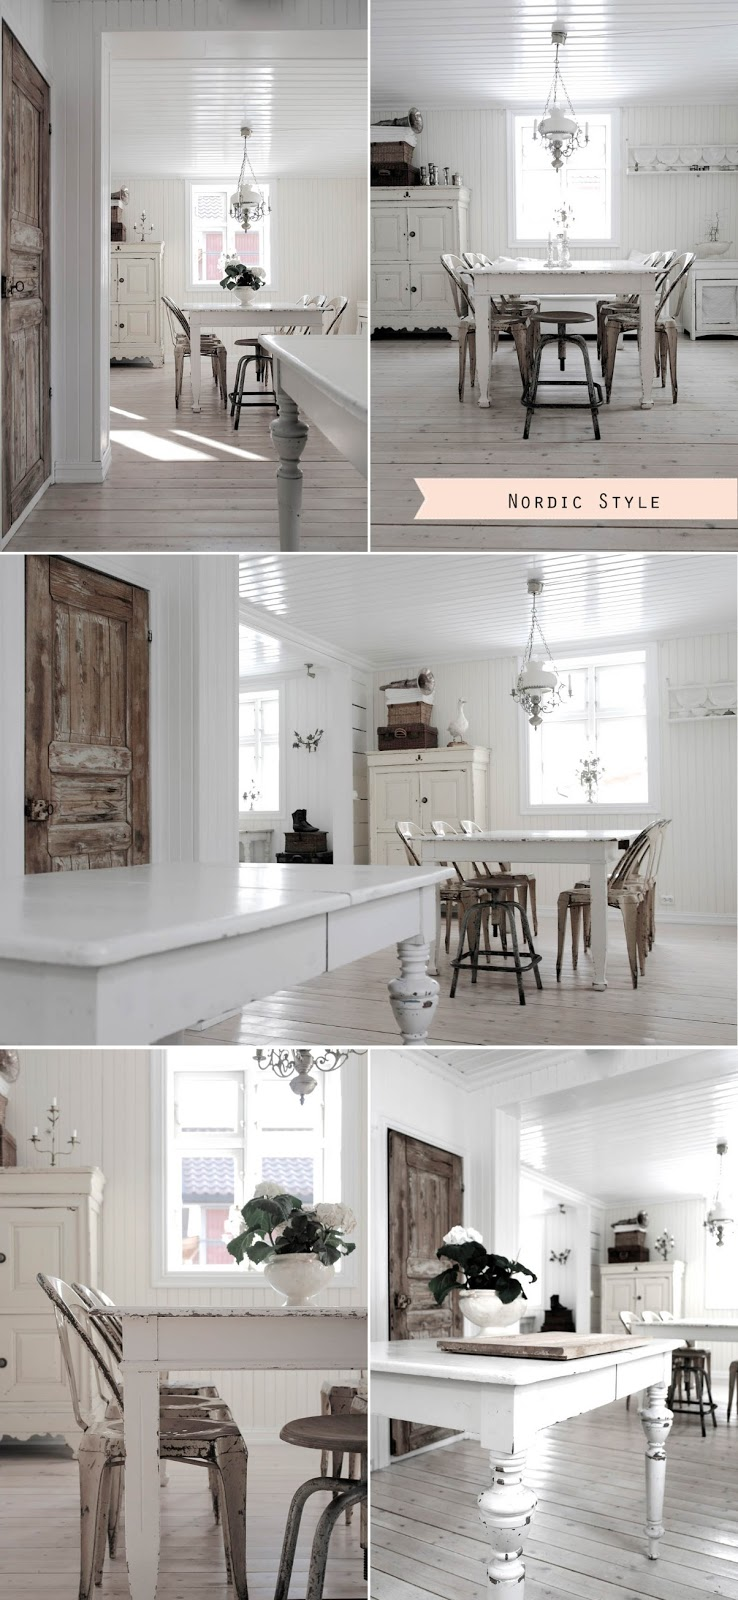 Stile nordico vs stile industriale   shabby chic interiors